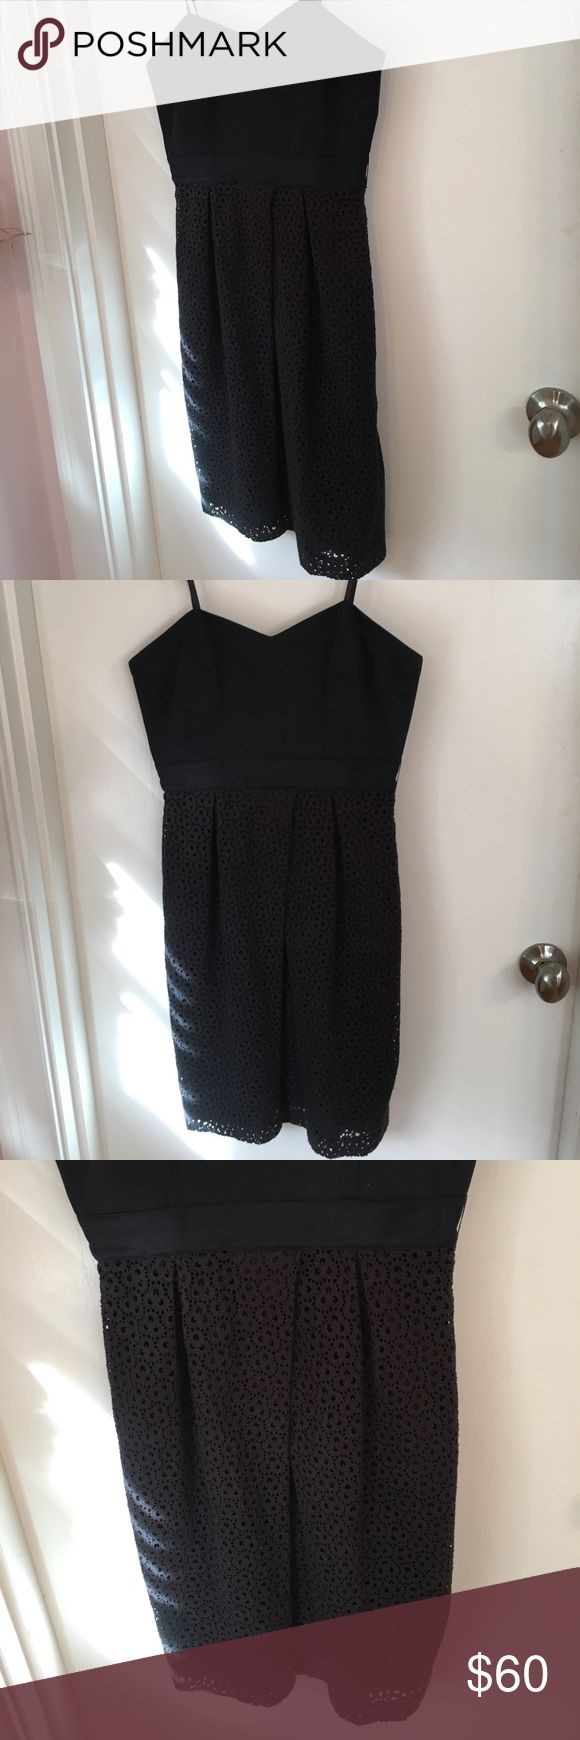 Black Spaghetti Strap Lace Laundry Dress In great pre-owned condition. No trades. Reasonable offers only Laundry by Shelli Segal Dresses Midi